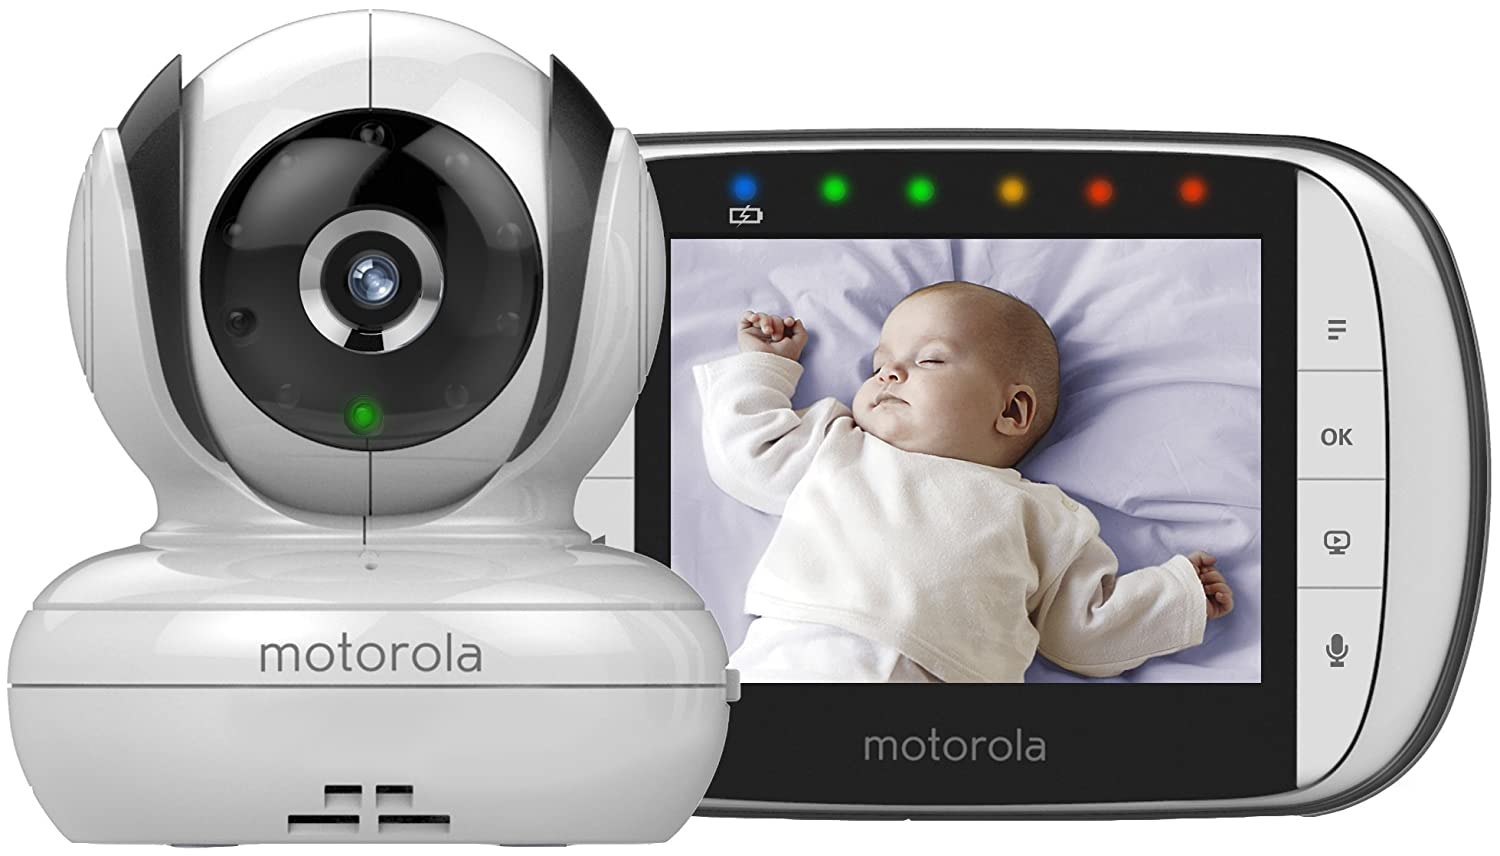 new motorola mbp36s digital video baby temperature monitor wireless 200m rang. Black Bedroom Furniture Sets. Home Design Ideas